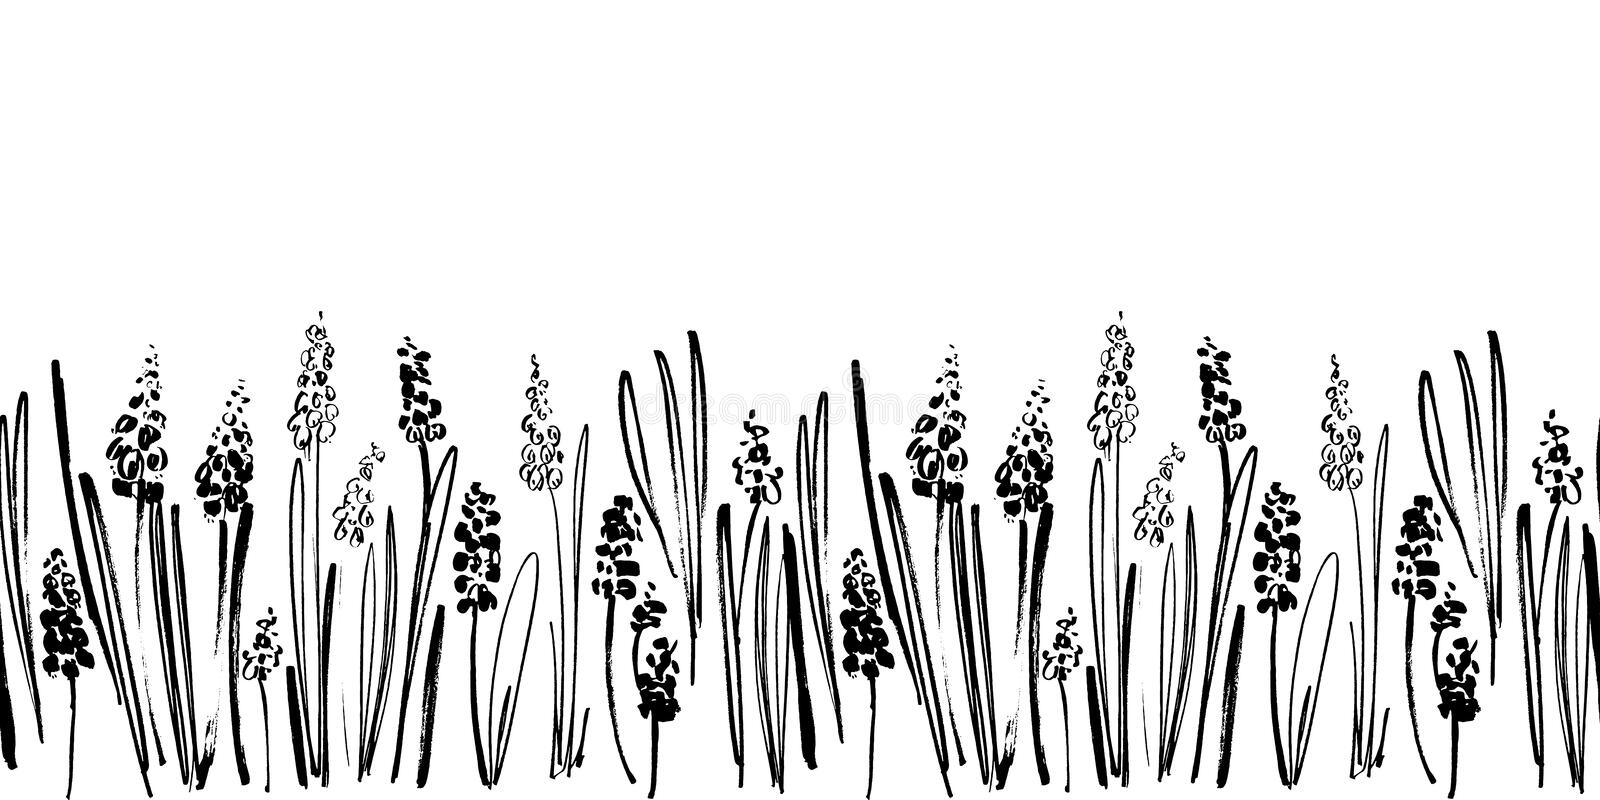 Vector seamless border with ink drawing hyacinths, herbs and flowers, monochrome artistic botanical illustration. Floral elements, hand drawn repeatable vector illustration